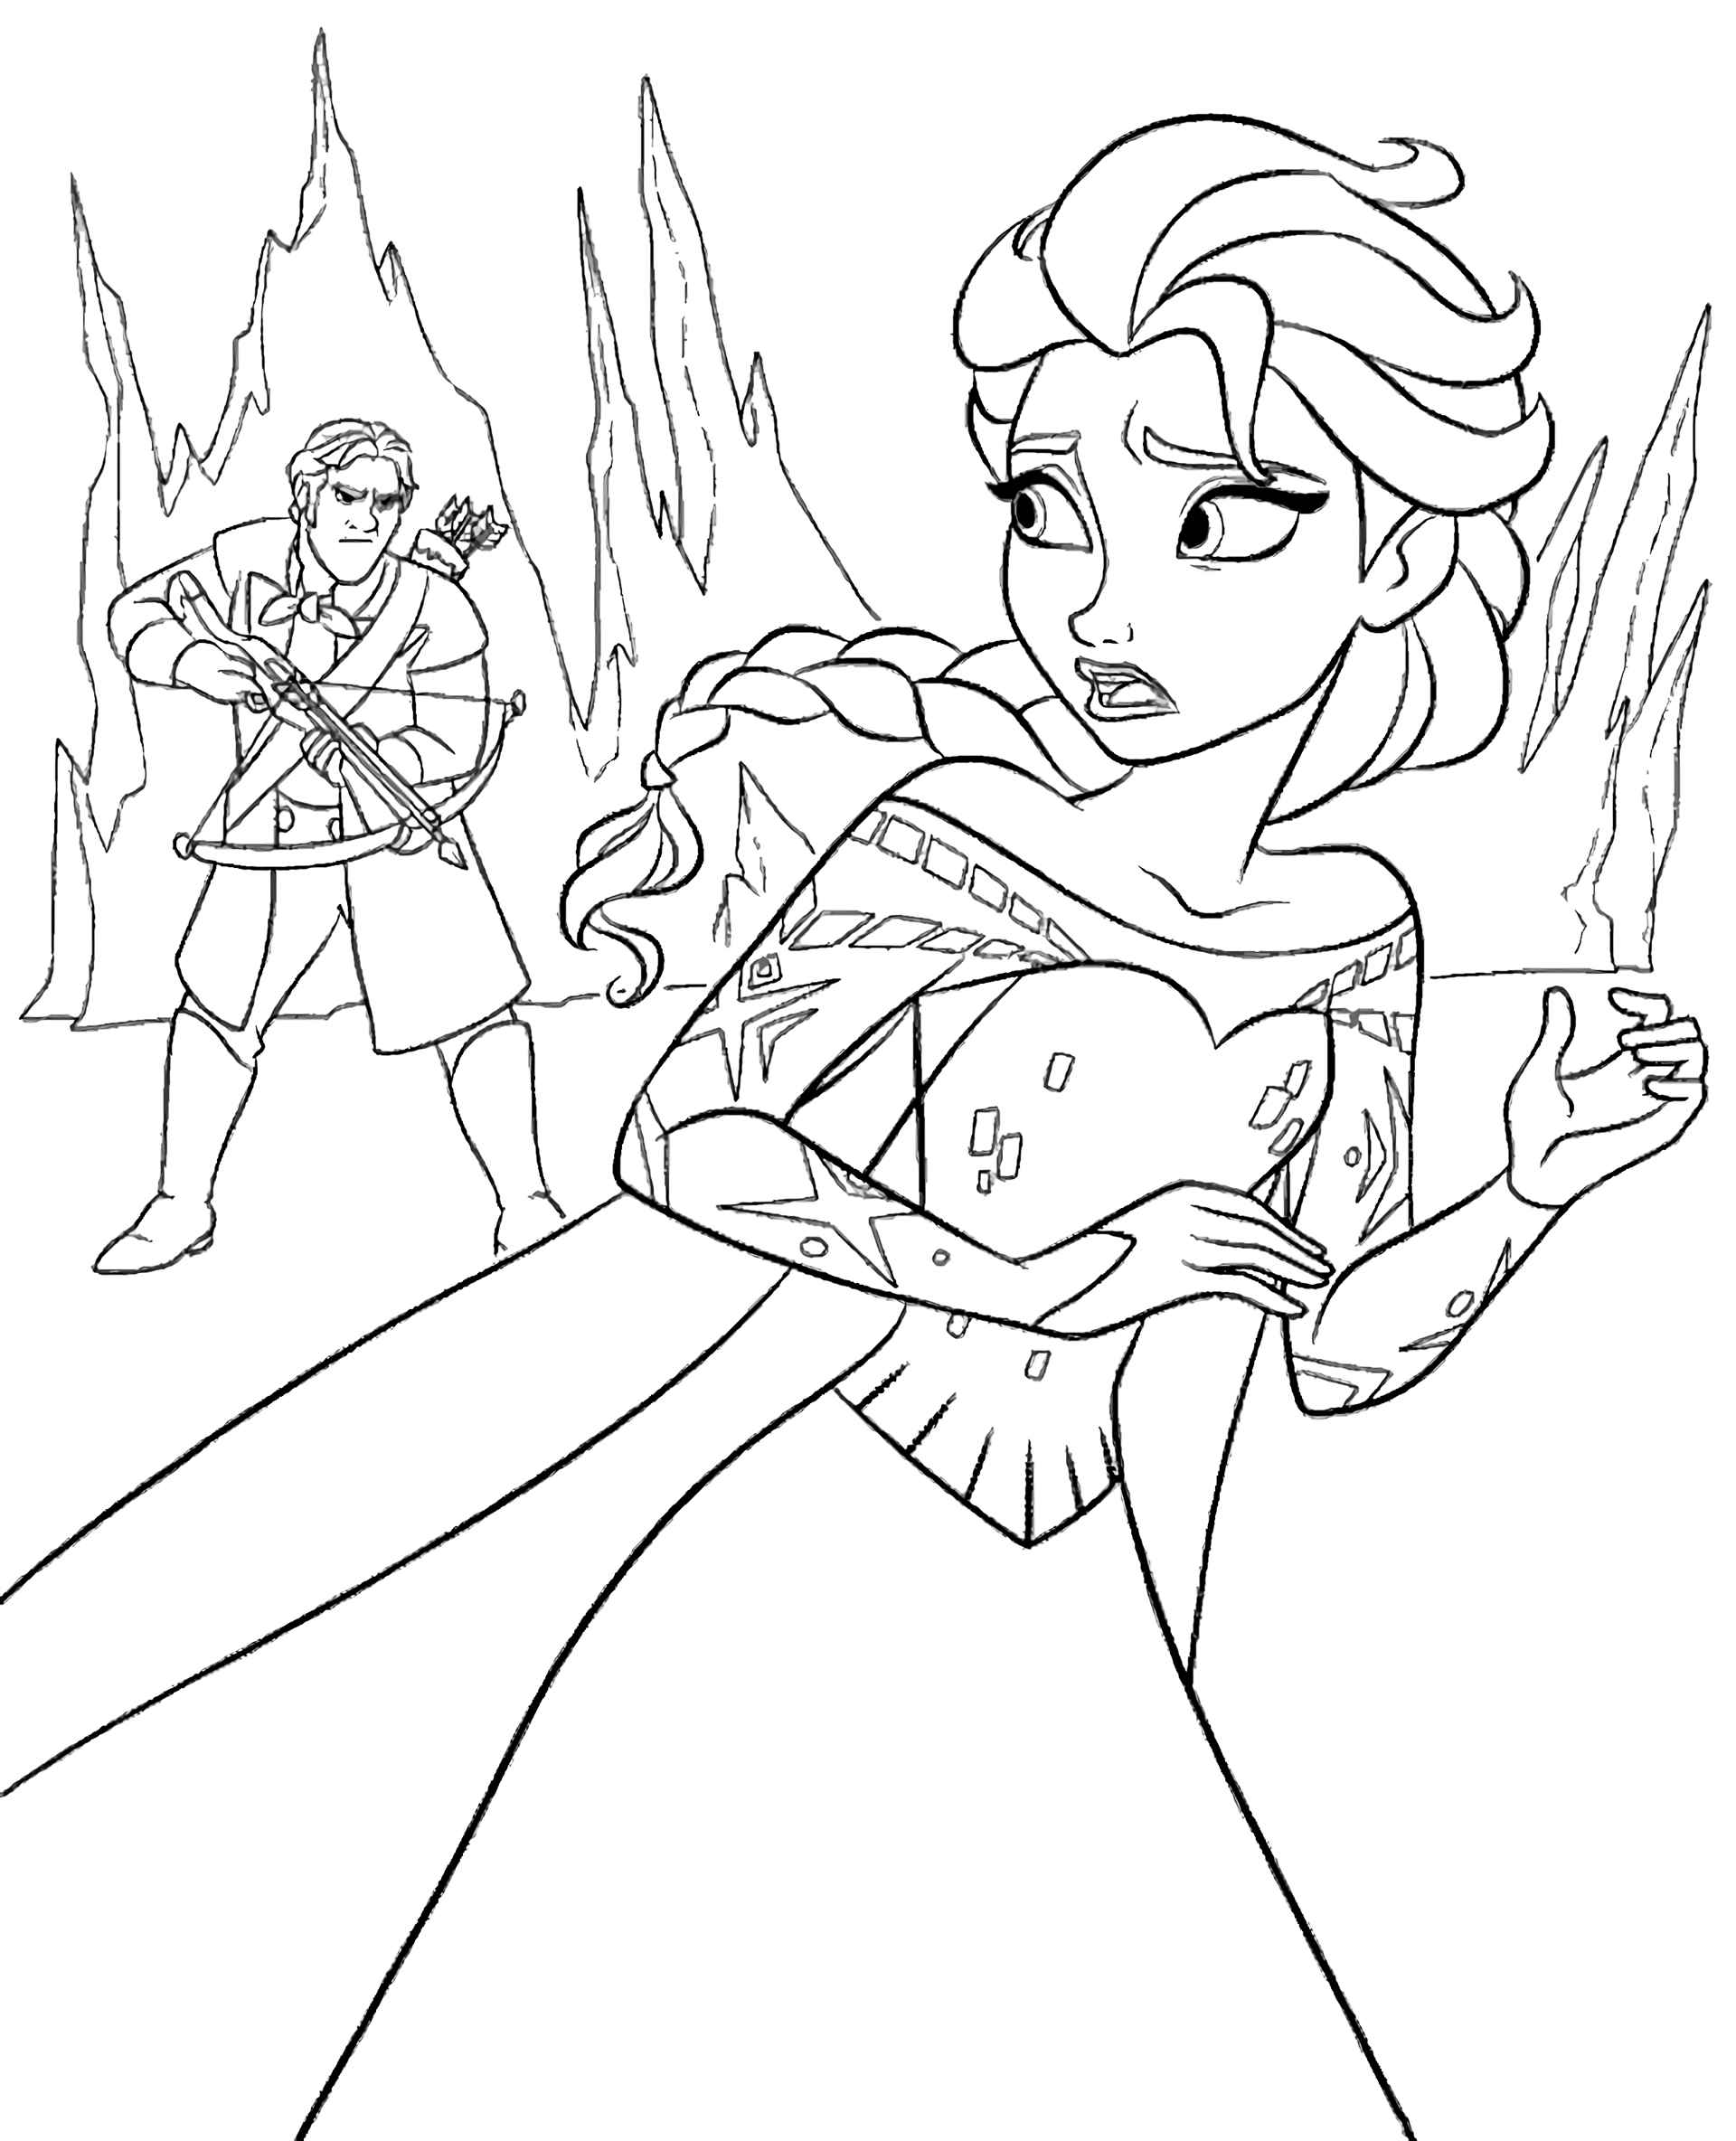 Elsa Running Away From Hans Coloring Page